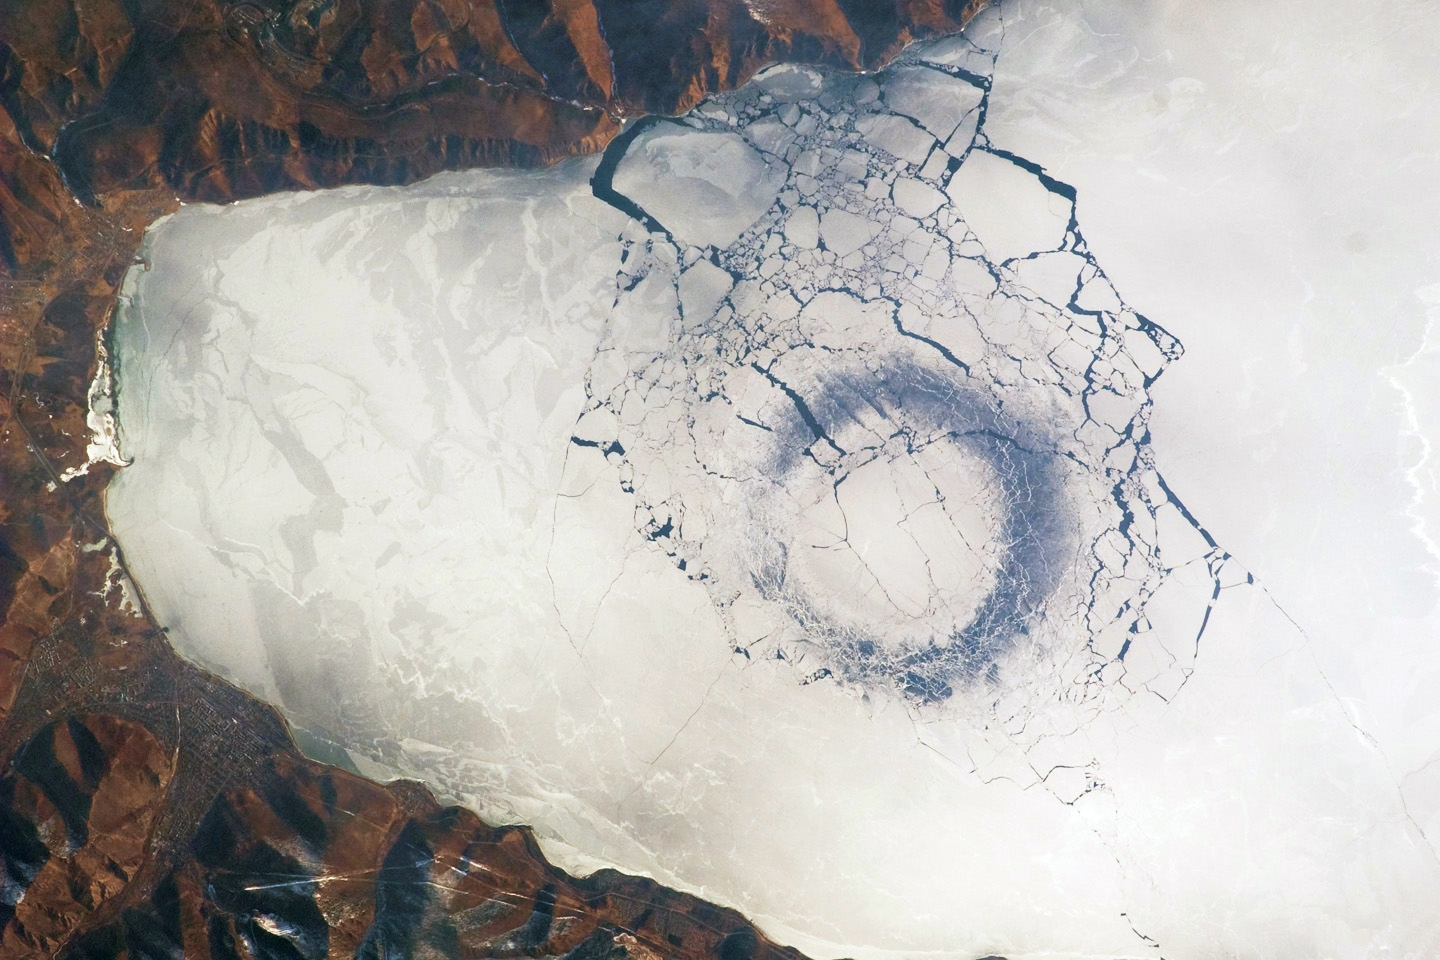 Lake Baikal circles in ice